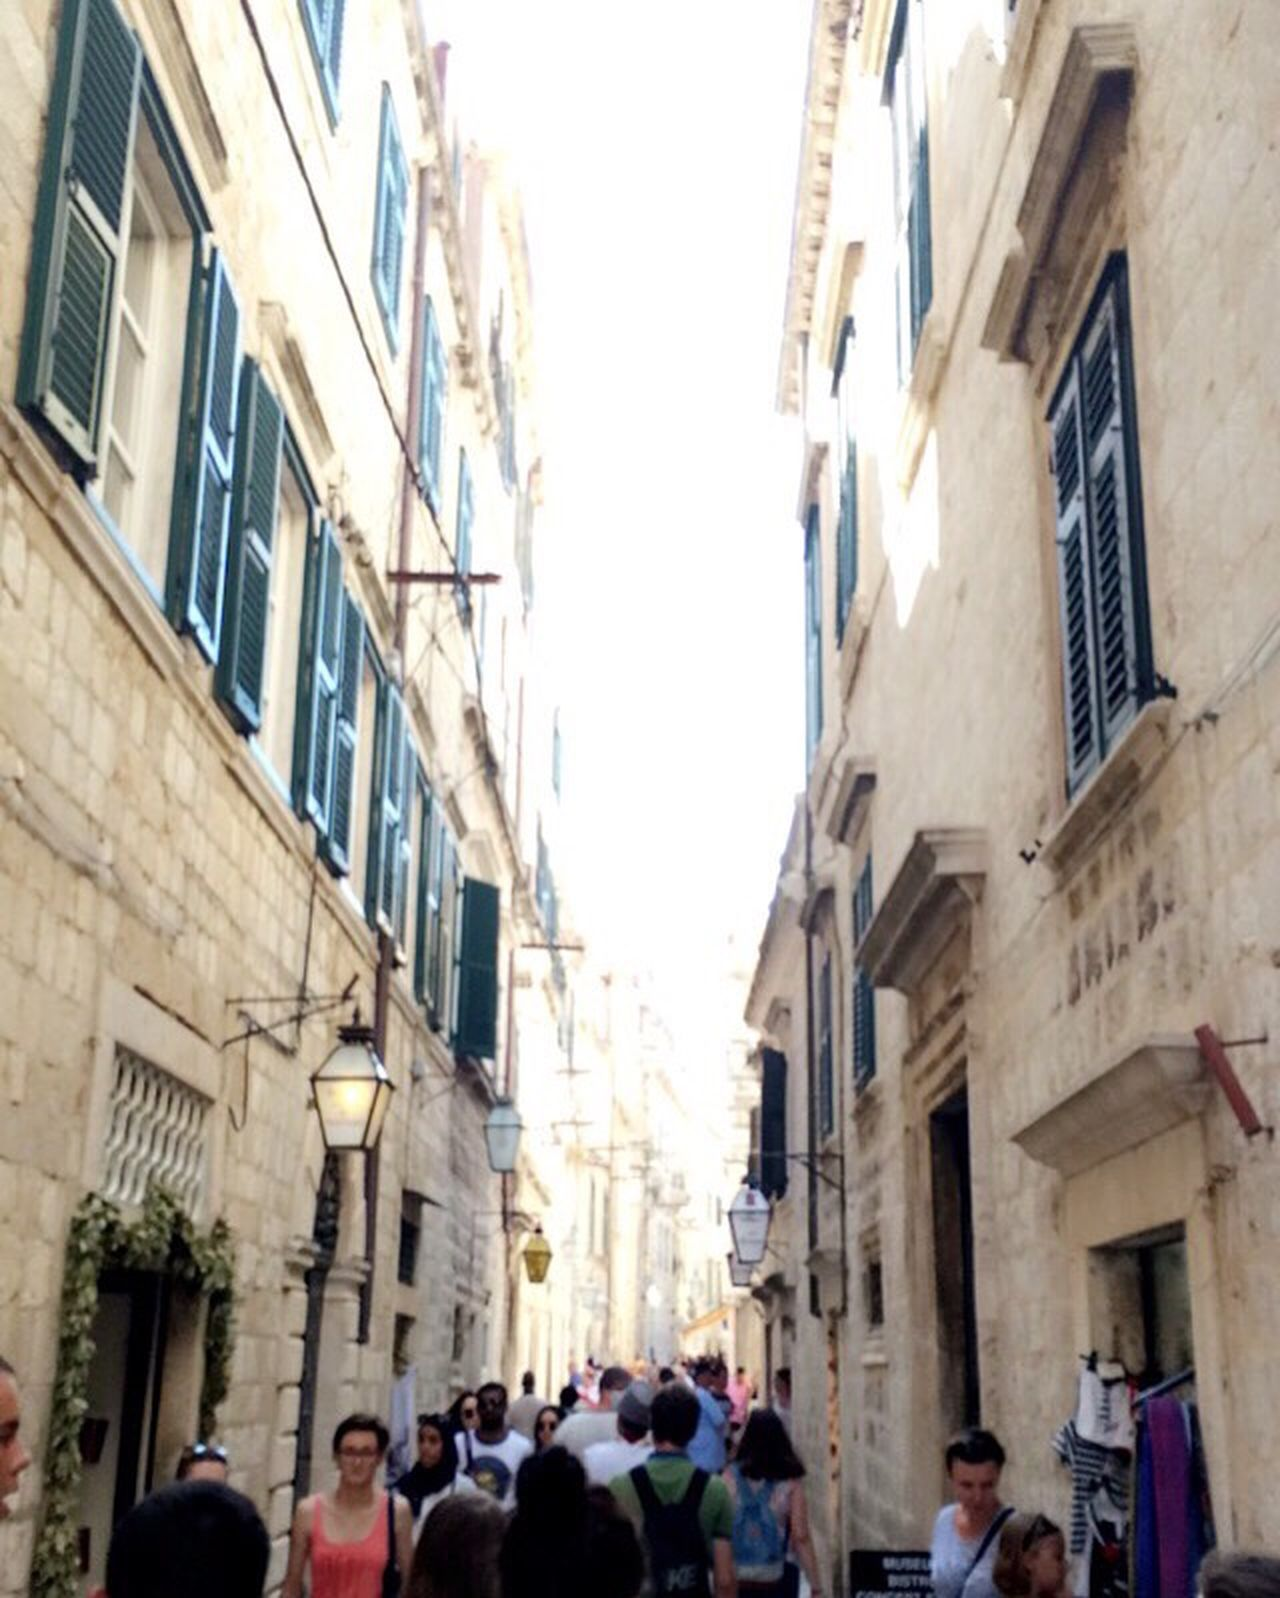 Building Exterior Large Group Of People Architecture People City Walking Travel Destinations City Life Dubrovnik, Croatia Built Structure